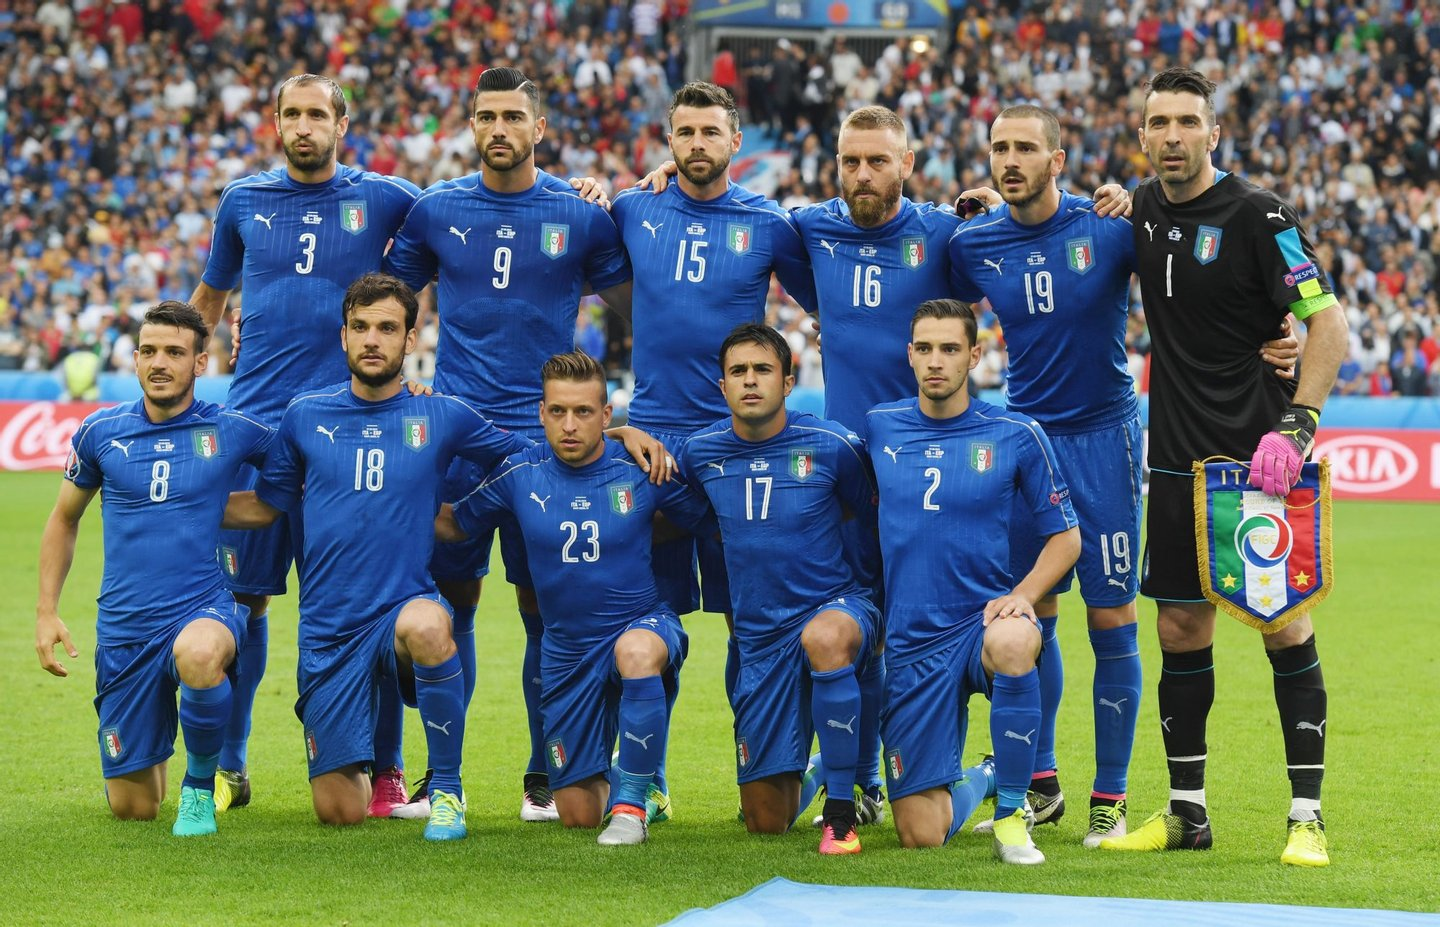 PARIS, FRANCE - JUNE 27: Italy players line up for the team photos prior to the UEFA EURO 2016 round of 16 match between Italy and Spain at Stade de France on June 27, 2016 in Paris, France. (Photo by Matthias Hangst/Getty Images)